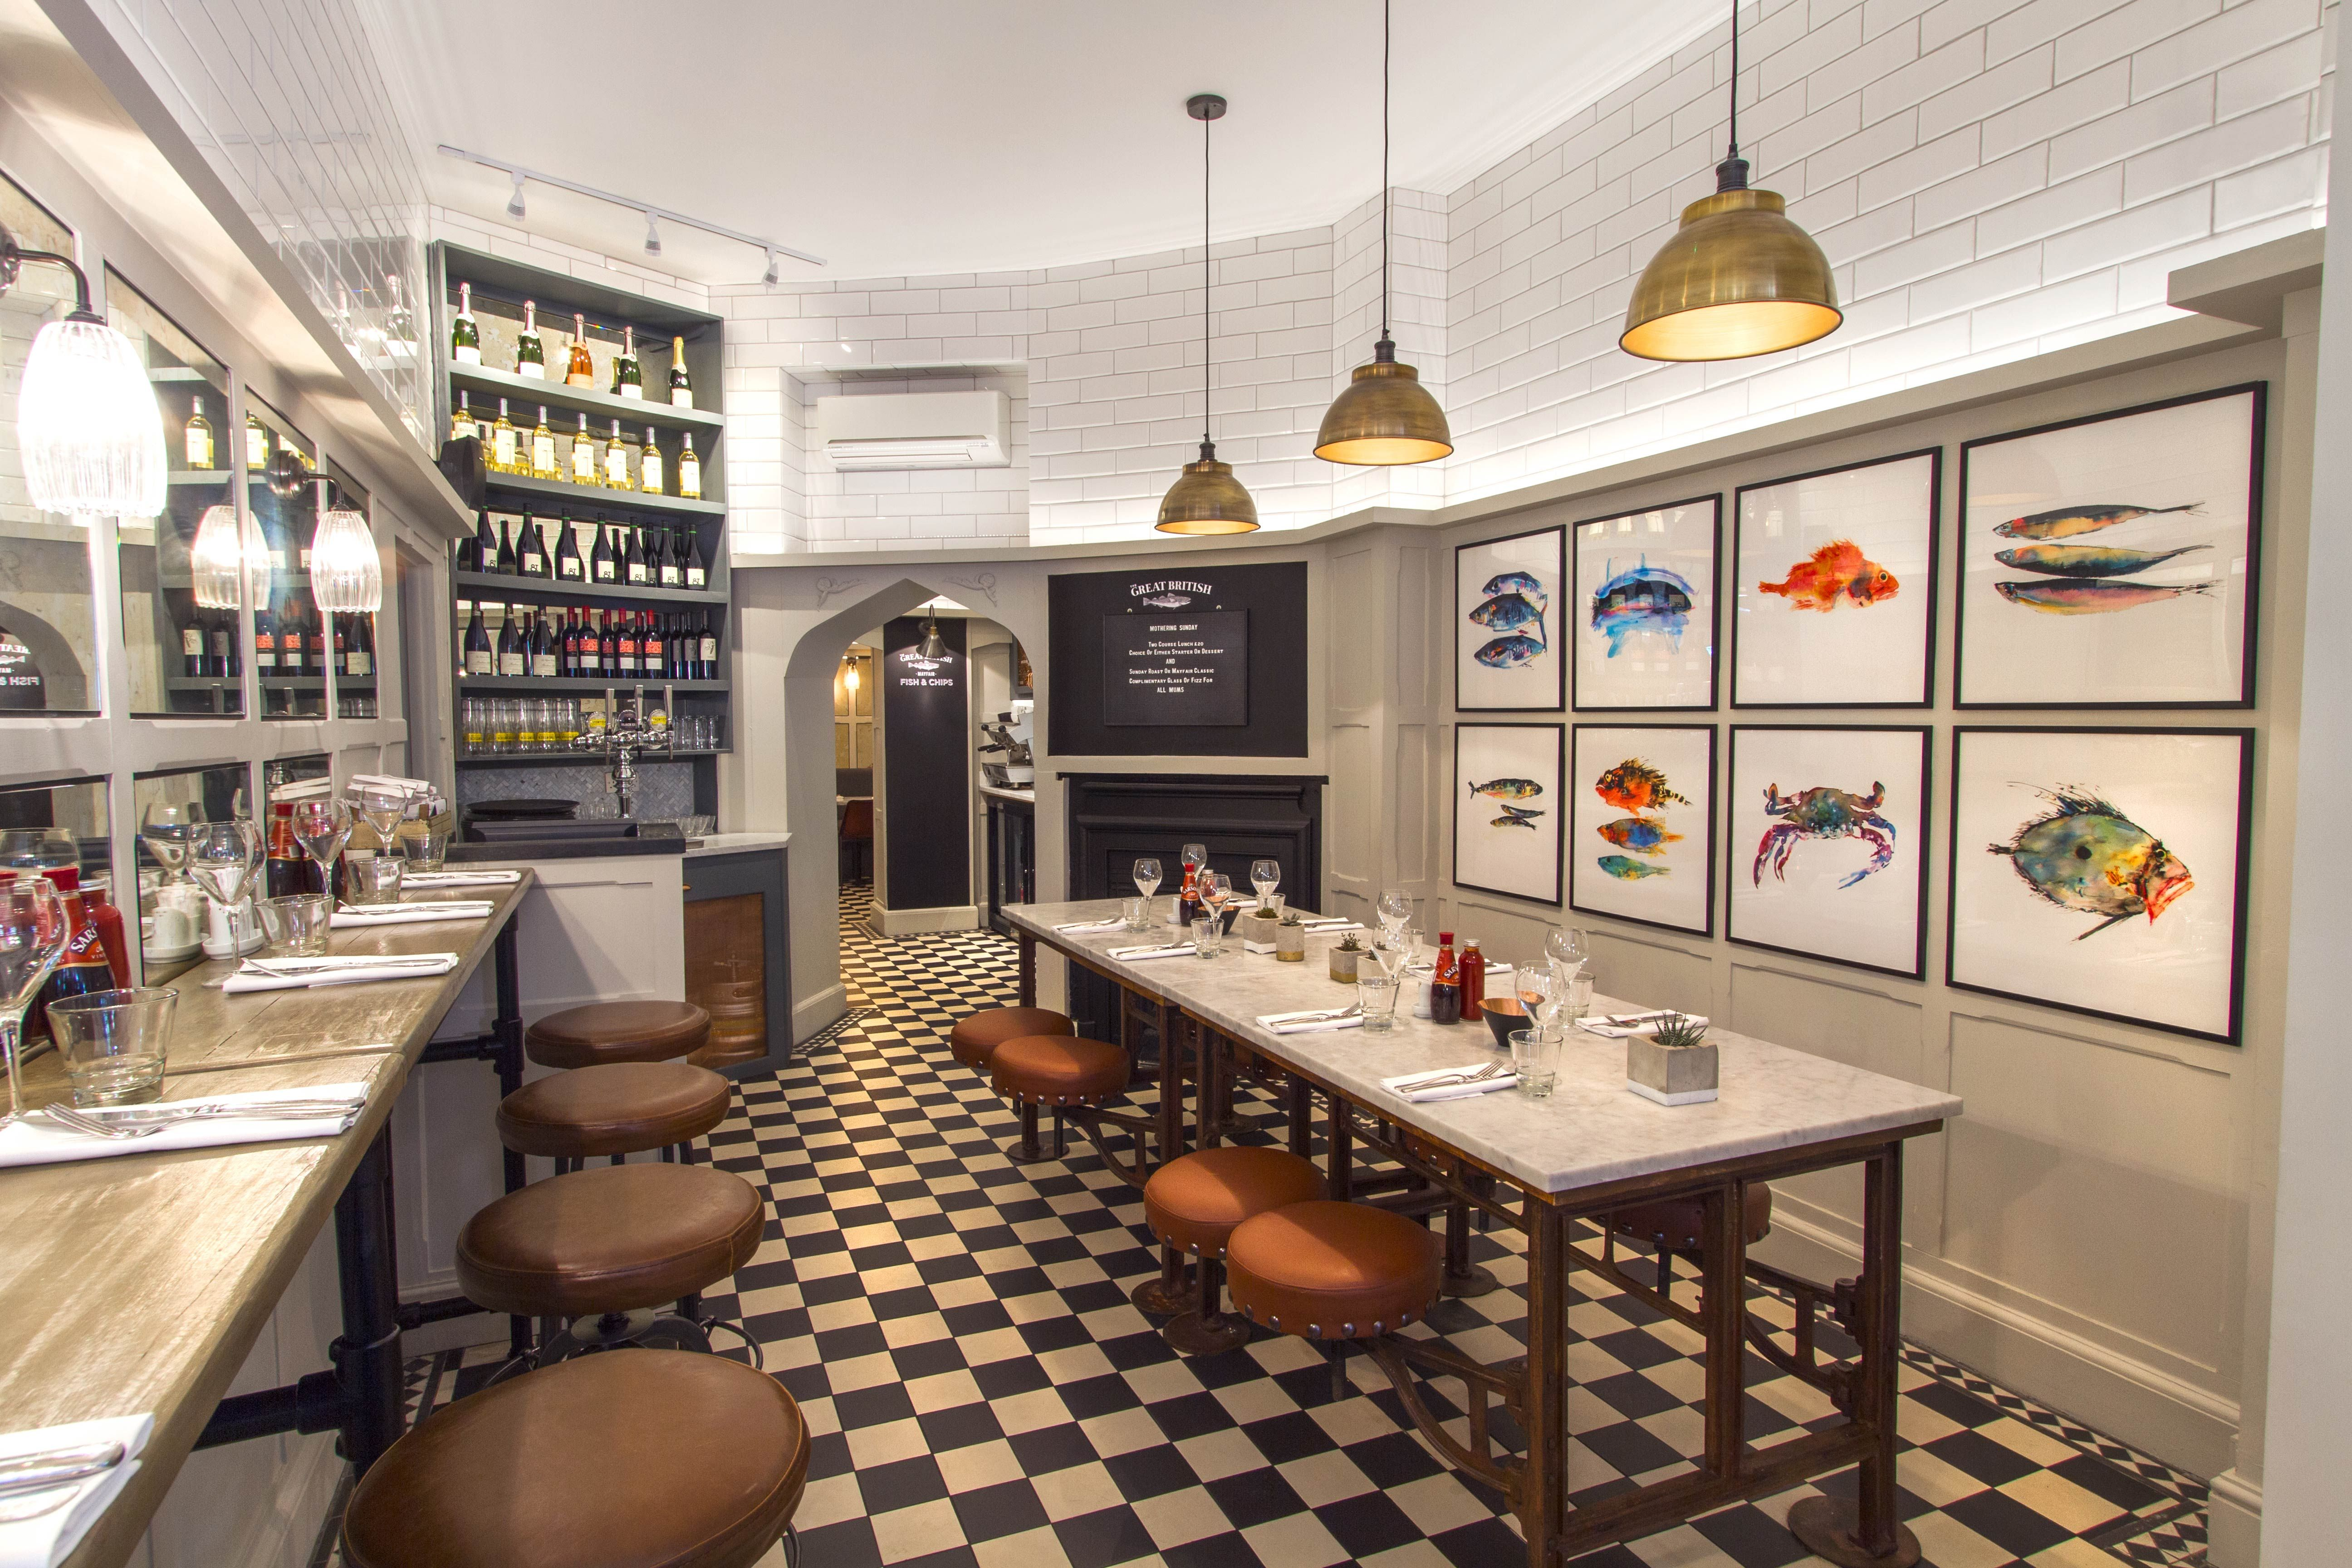 Stephenson Wright Ltd The Mayfair Chippy London Interior Design Restaurant Design Restaurant Interior Design Family Dining Restaurant